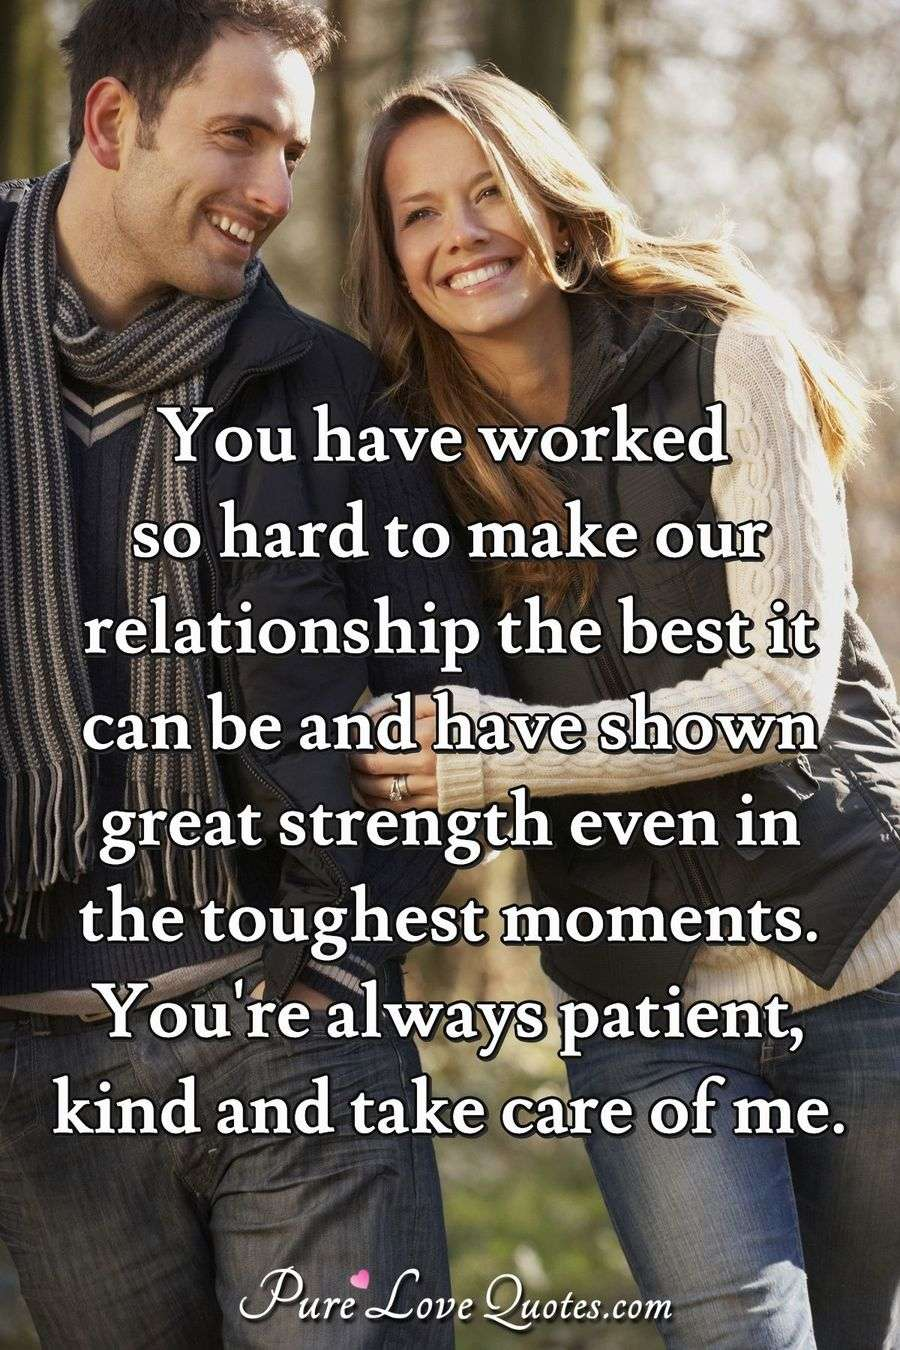 You Have Worked So Hard To Make Our Relationship The Best It Can Be